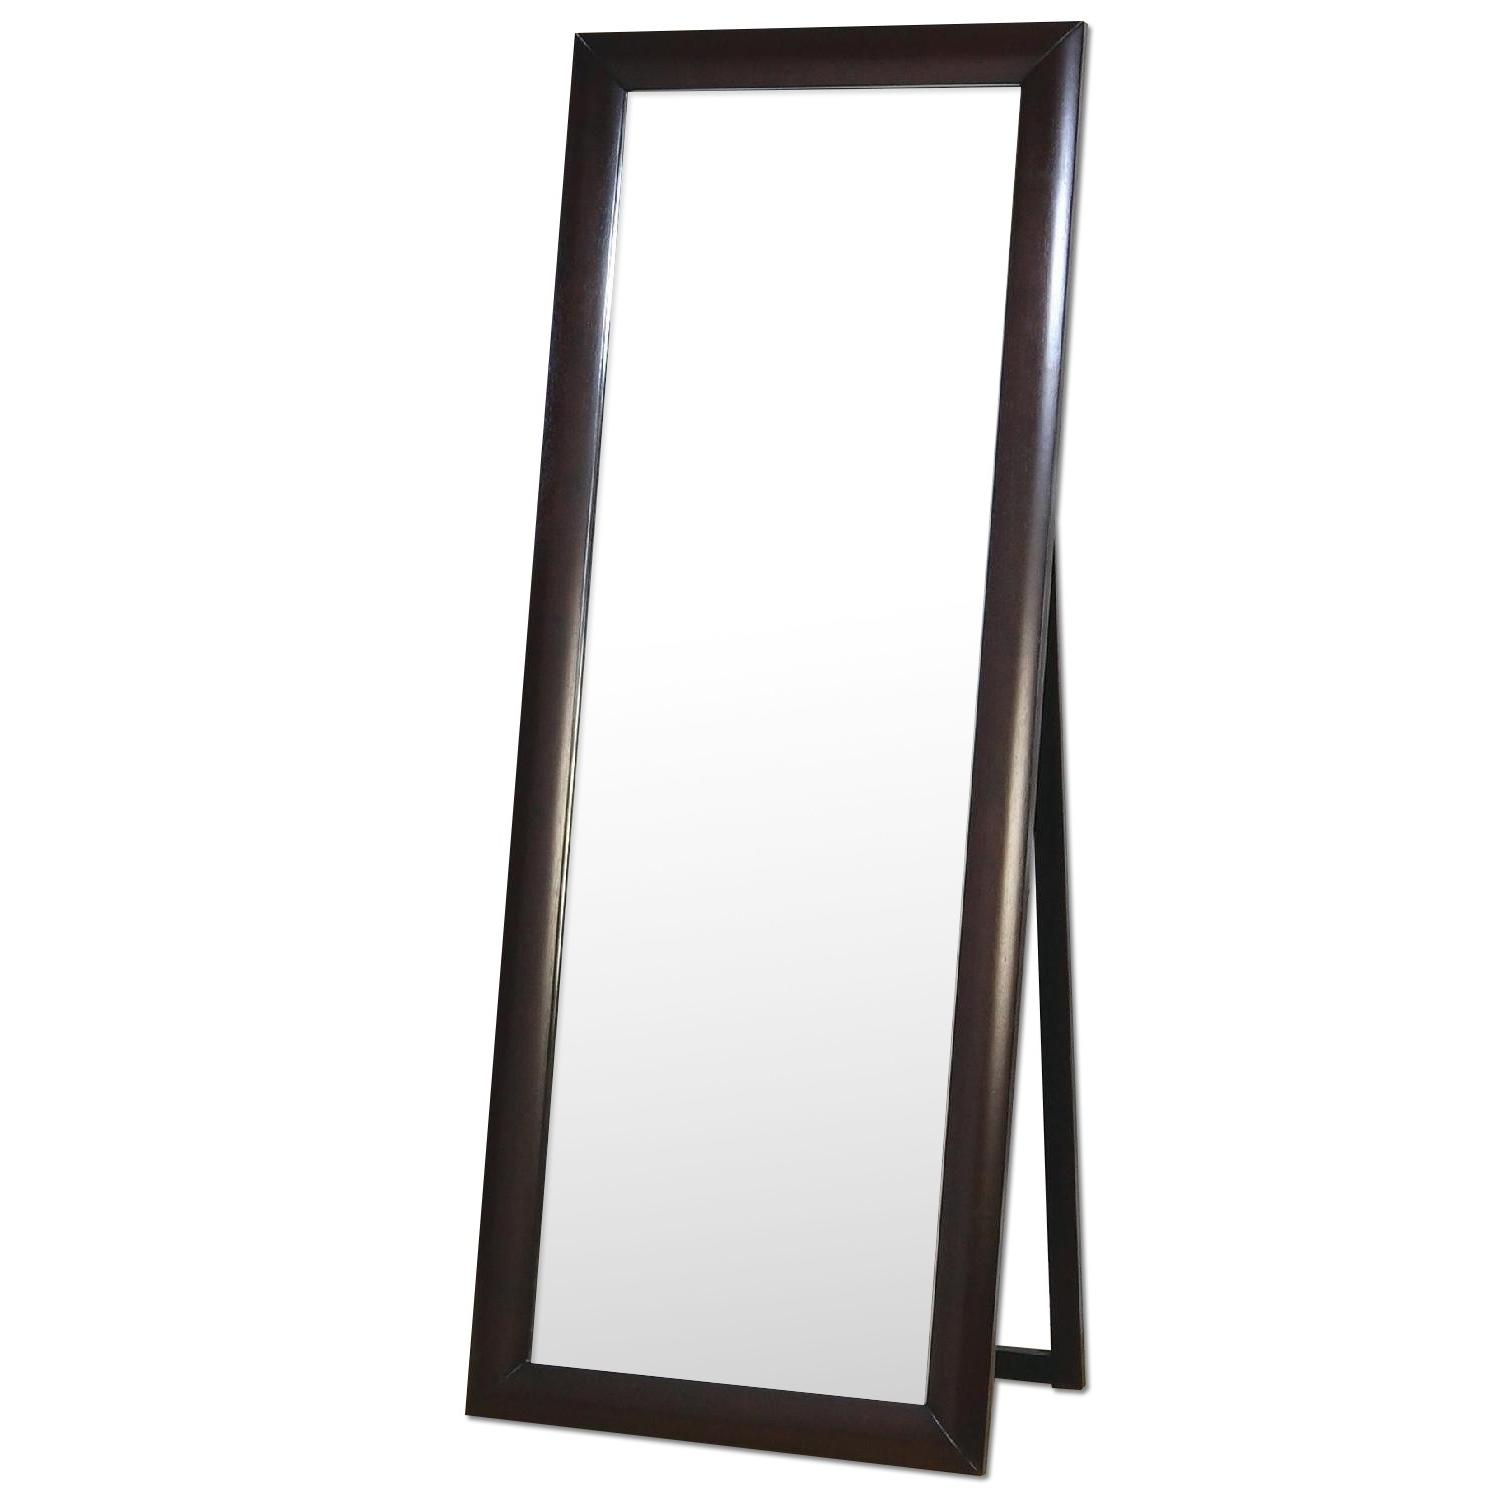 Contemporary Standing Floor Mirror in Warm Brown Finish - image-0